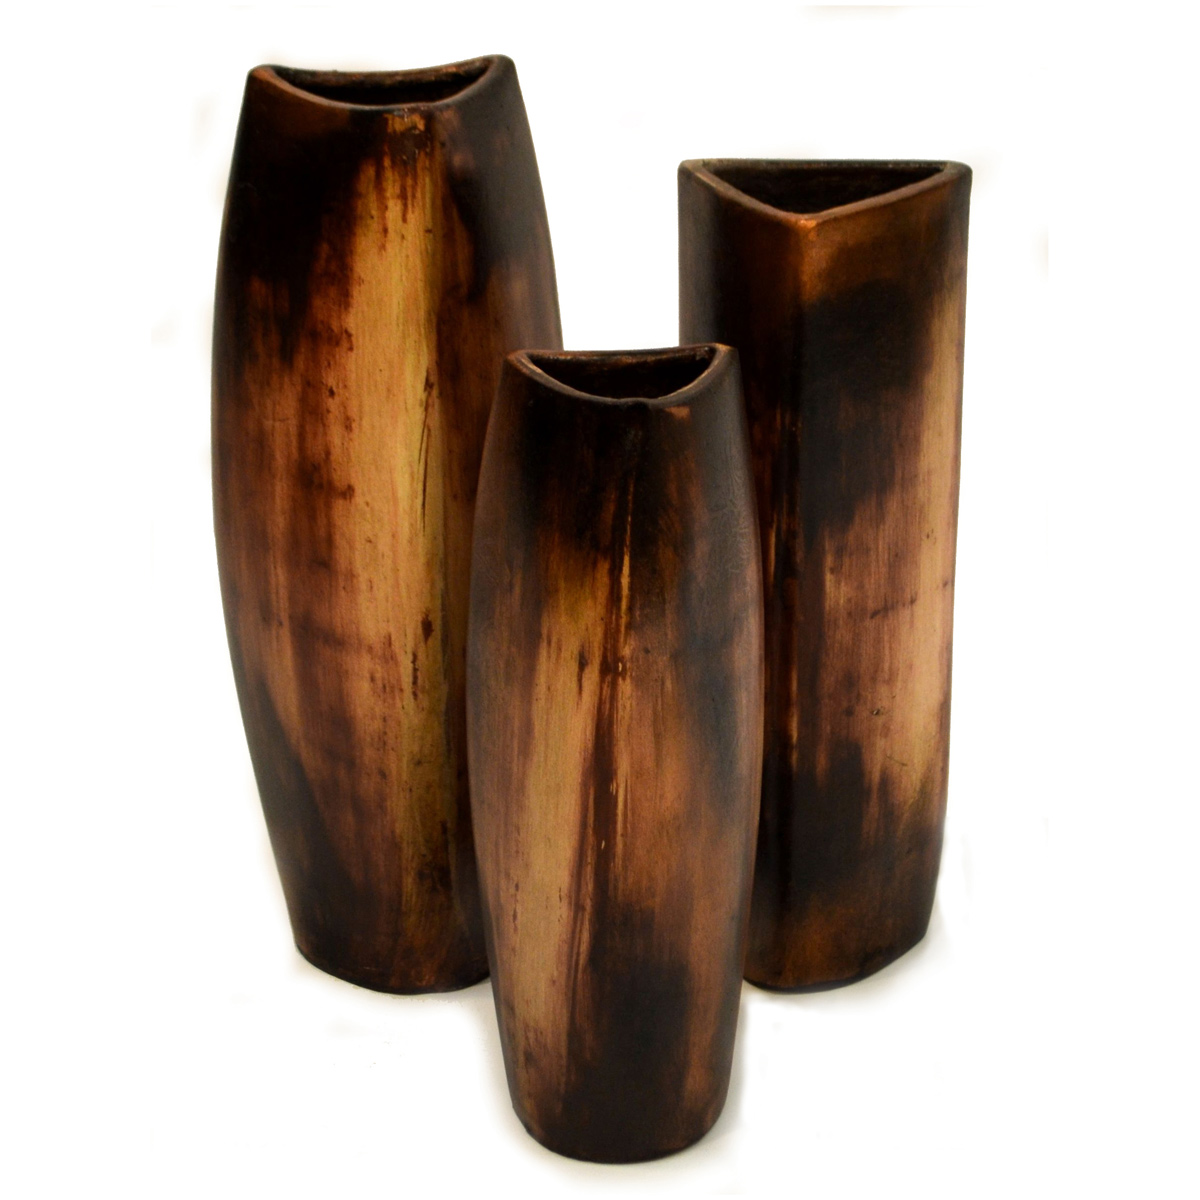 Brown Mini Arbol Vases - Set of 3